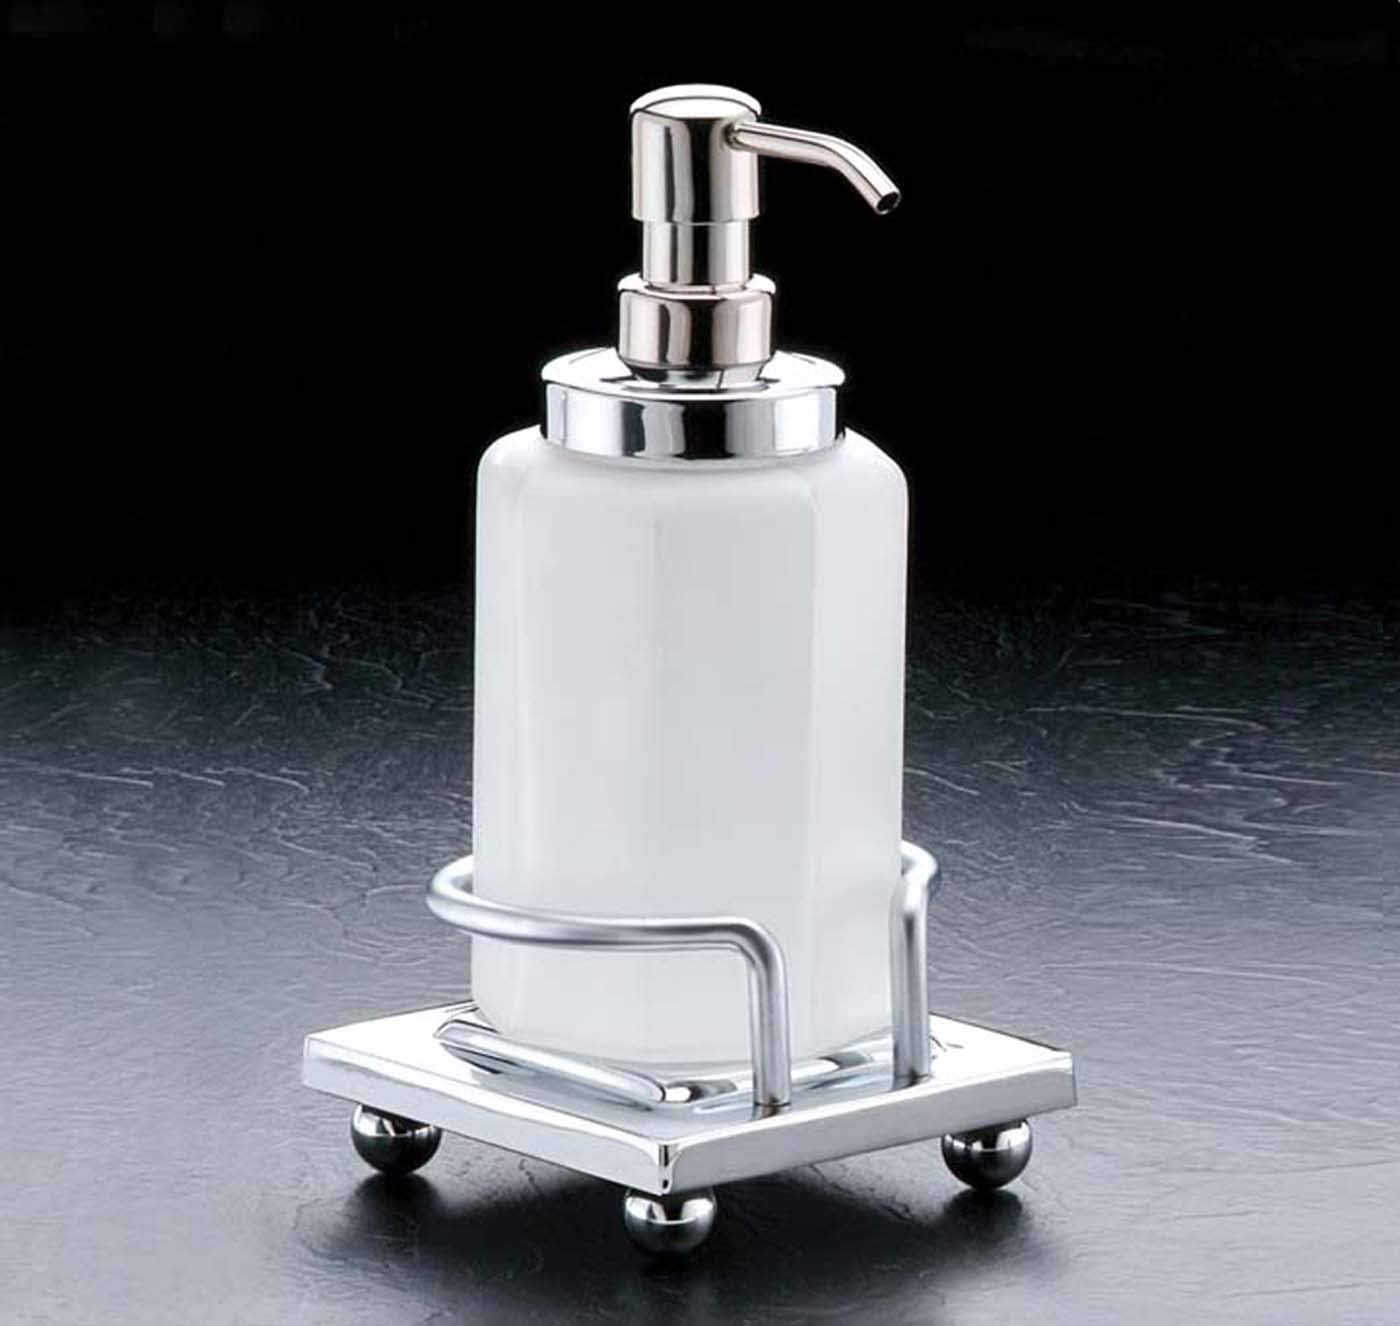 MD Group RJWright Lotion Dispenser by Taymor, 9'' x 4.5'' x 3.5 lbs